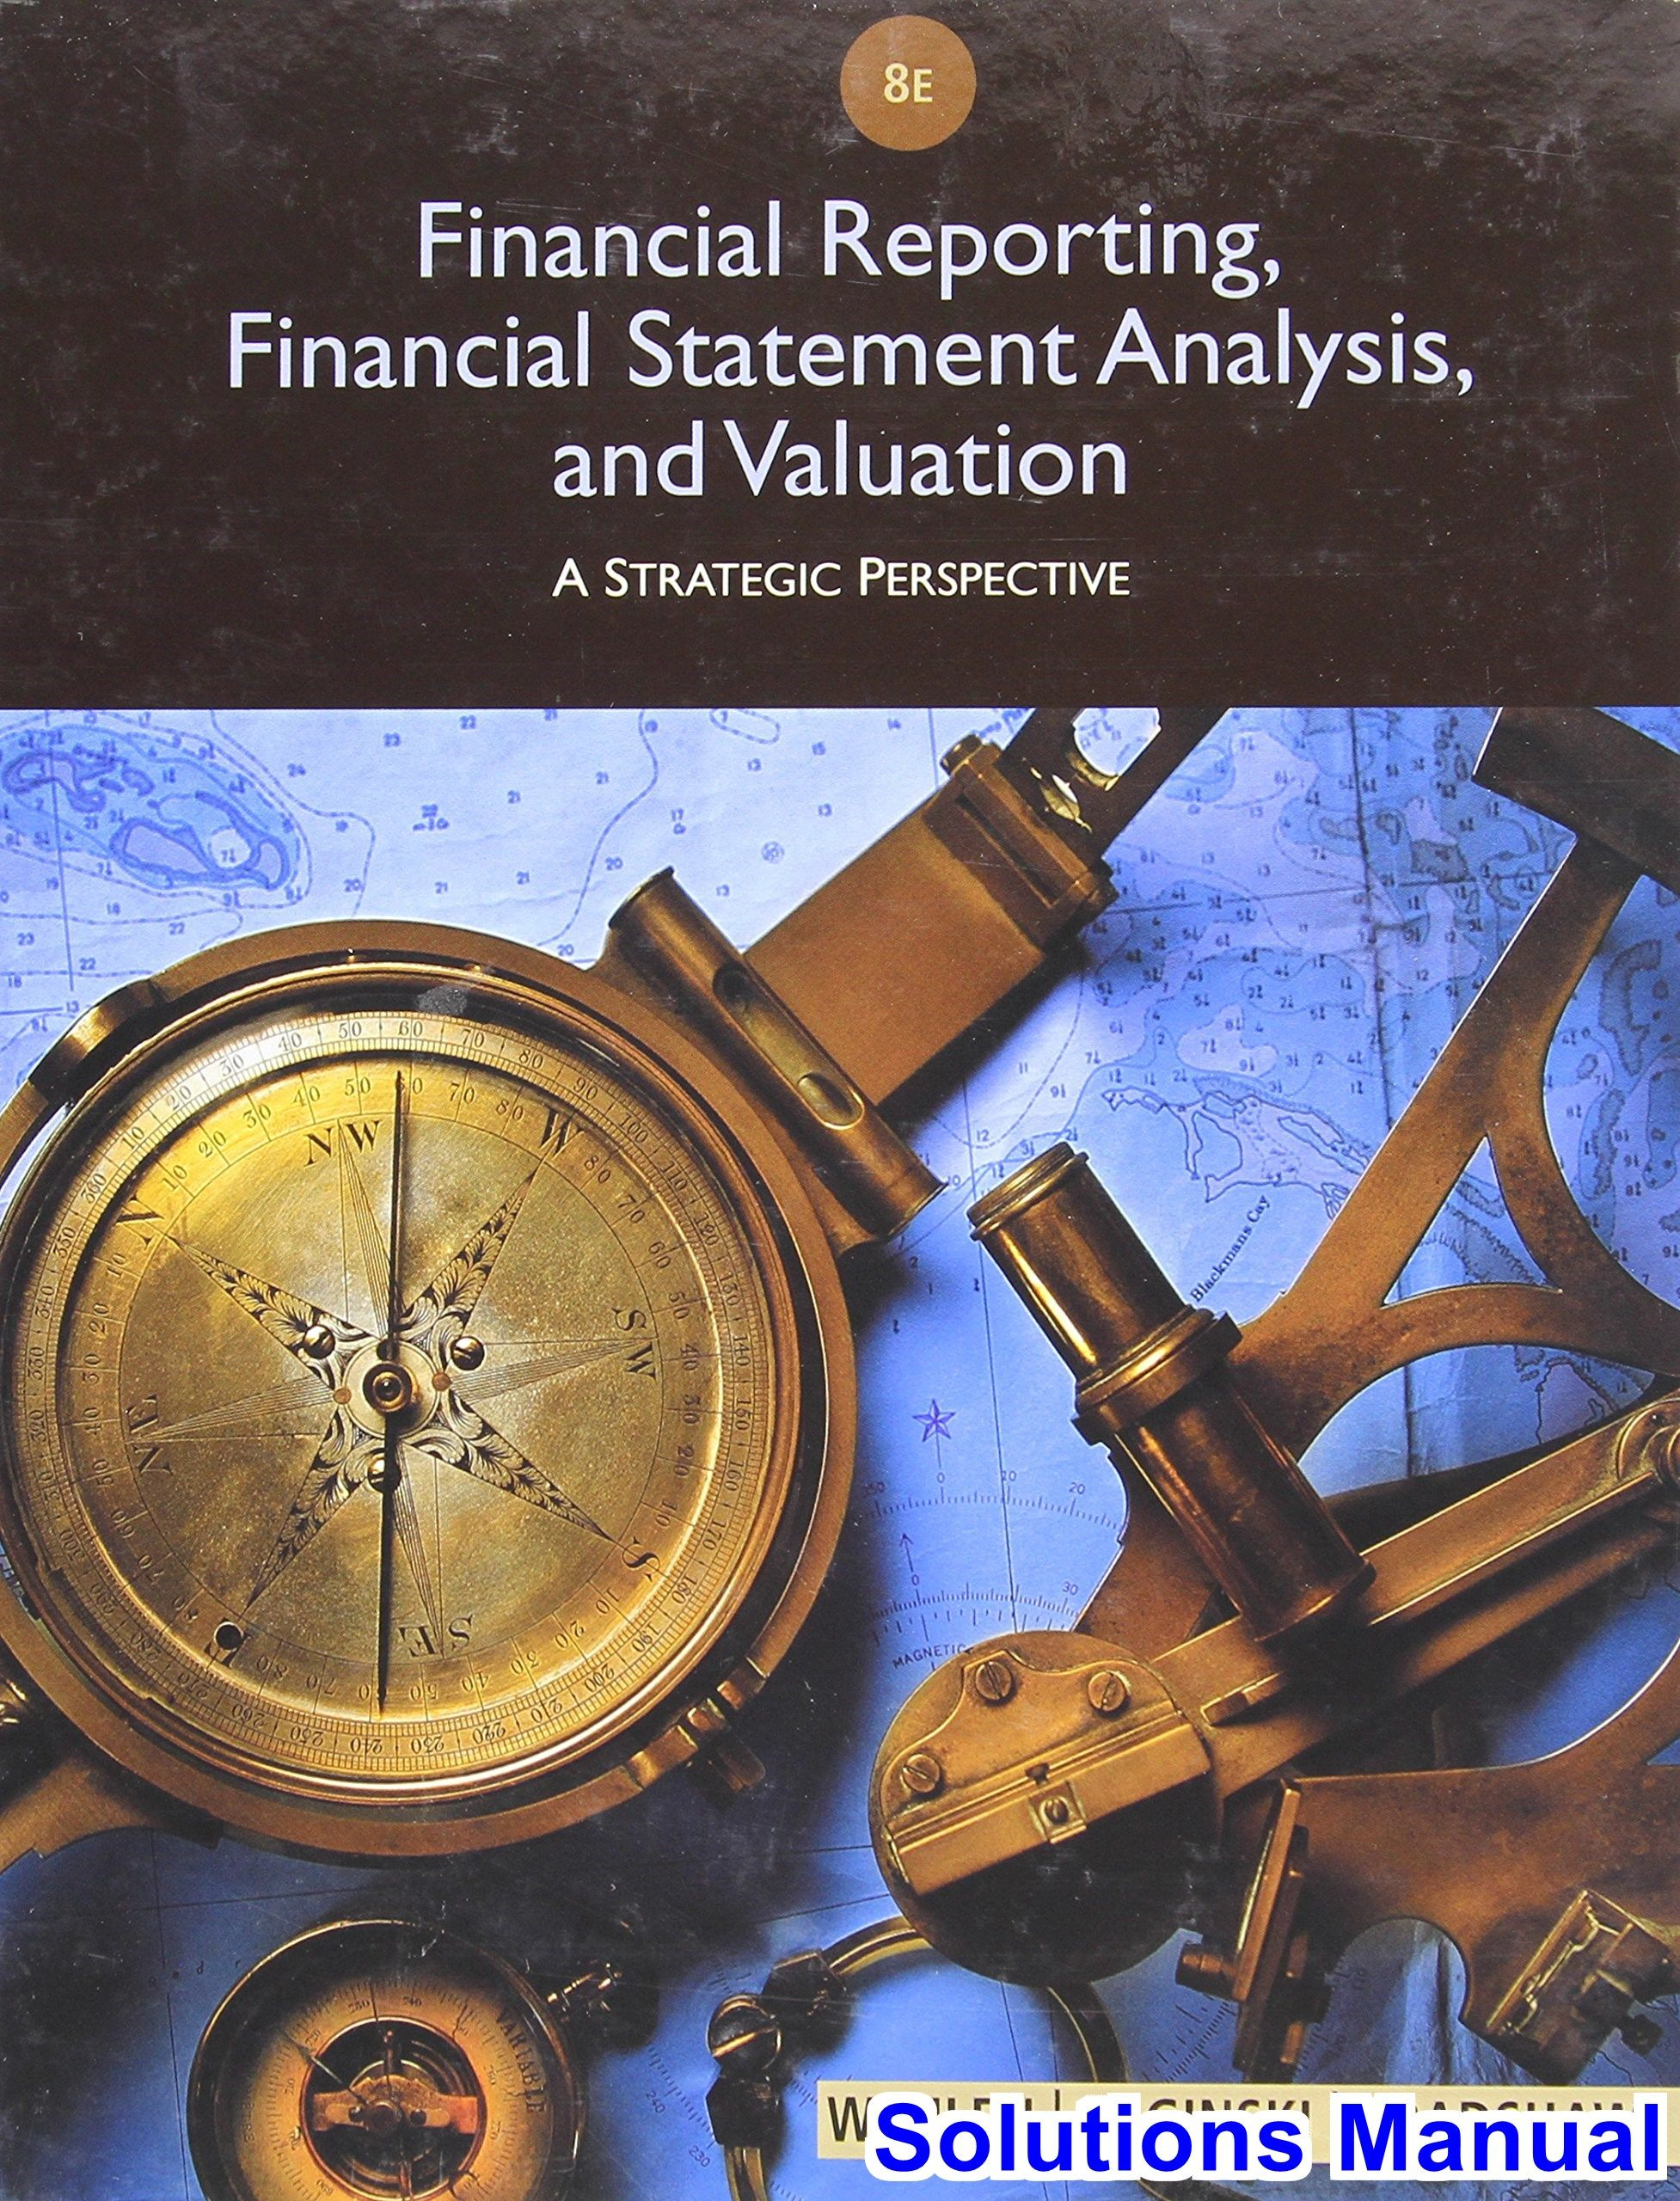 Financial Reporting Financial Statement Analysis and Valuation 8th Edition  Wahlen Solutions Manual - Test bank, Solutions manual, exam bank, quiz  bank, ...